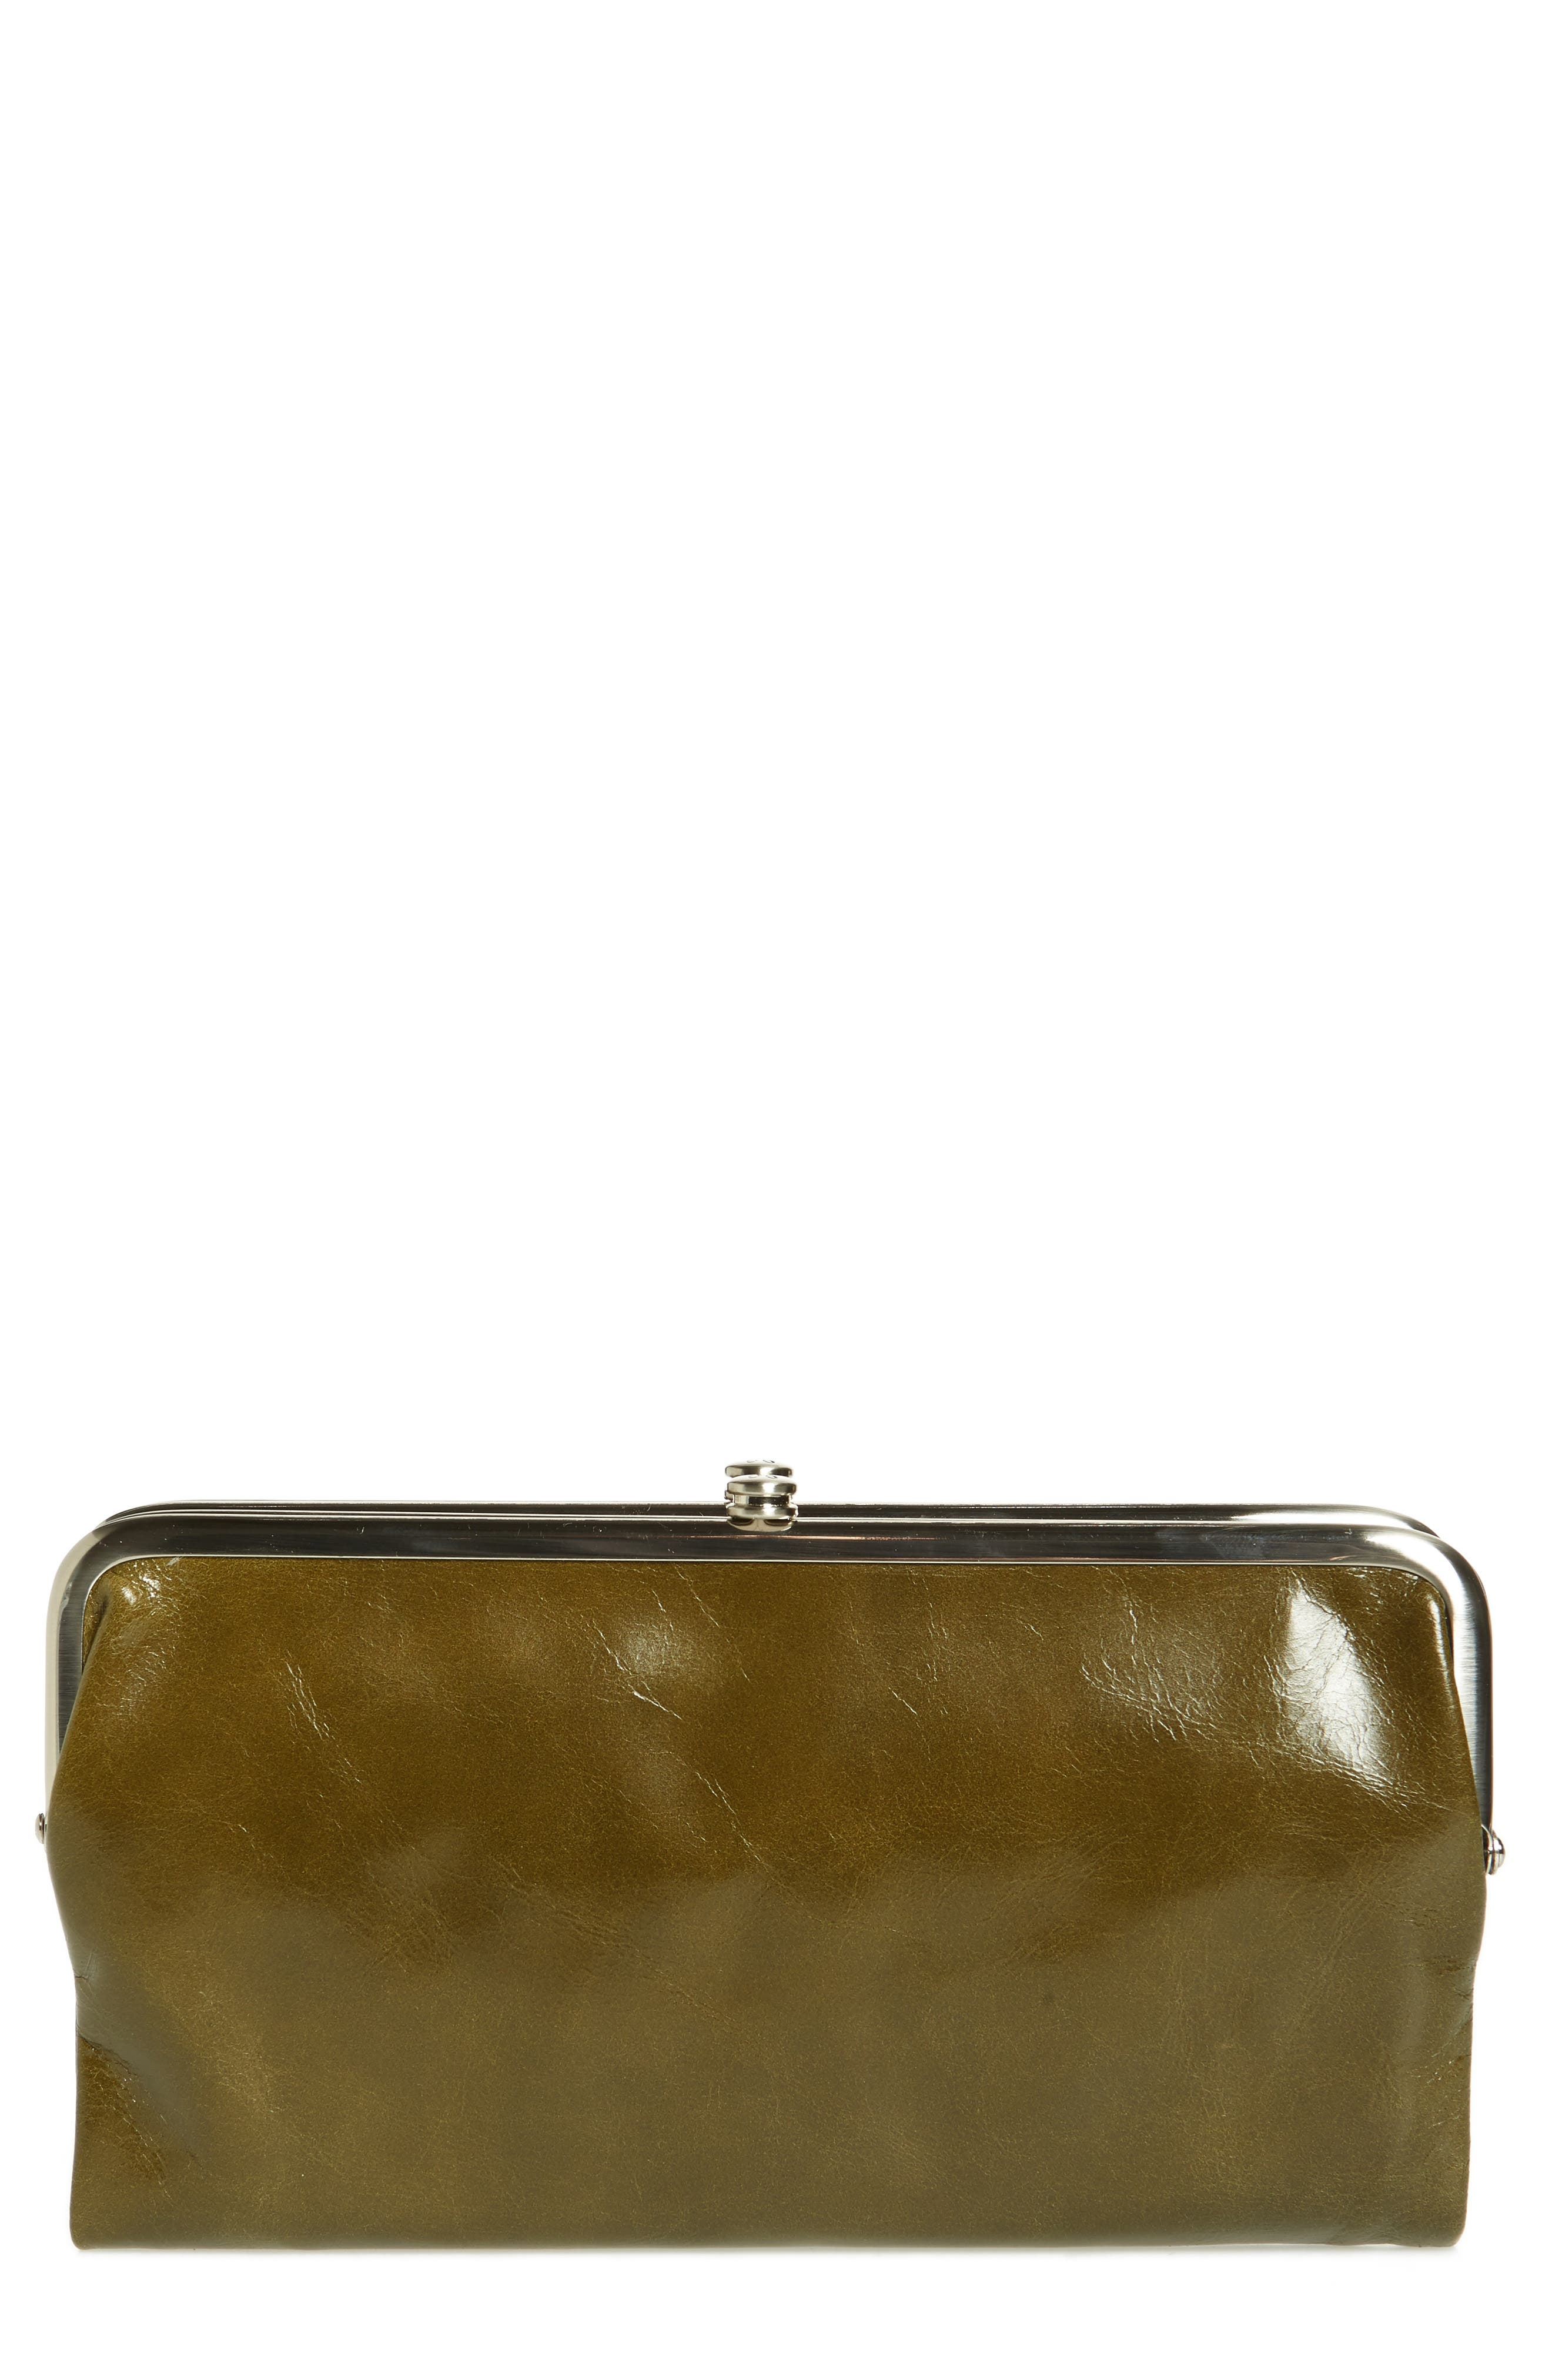 'Lauren' Leather Double Frame Clutch,                             Main thumbnail 1, color,                             Willow